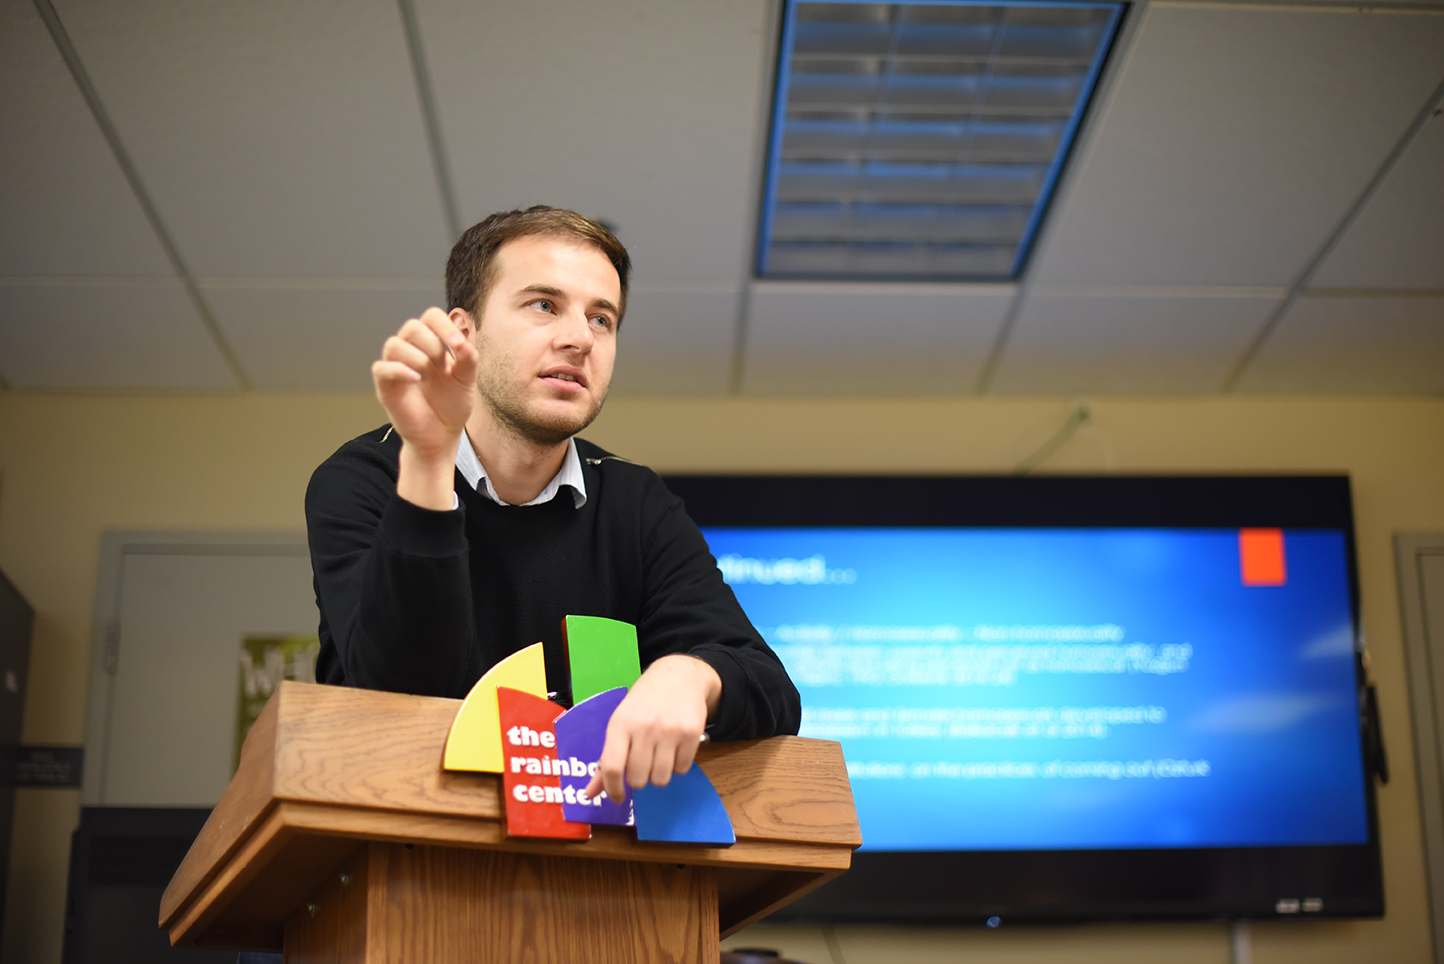 Guest lecturer Caner Hazar, a UConn Ph.D student in sociology, speaks during his lecture at the Rainbow Center in UConn's Student Union on Thursday, Dec. 10, 2015. (Allen Lang/The Daily Campus)